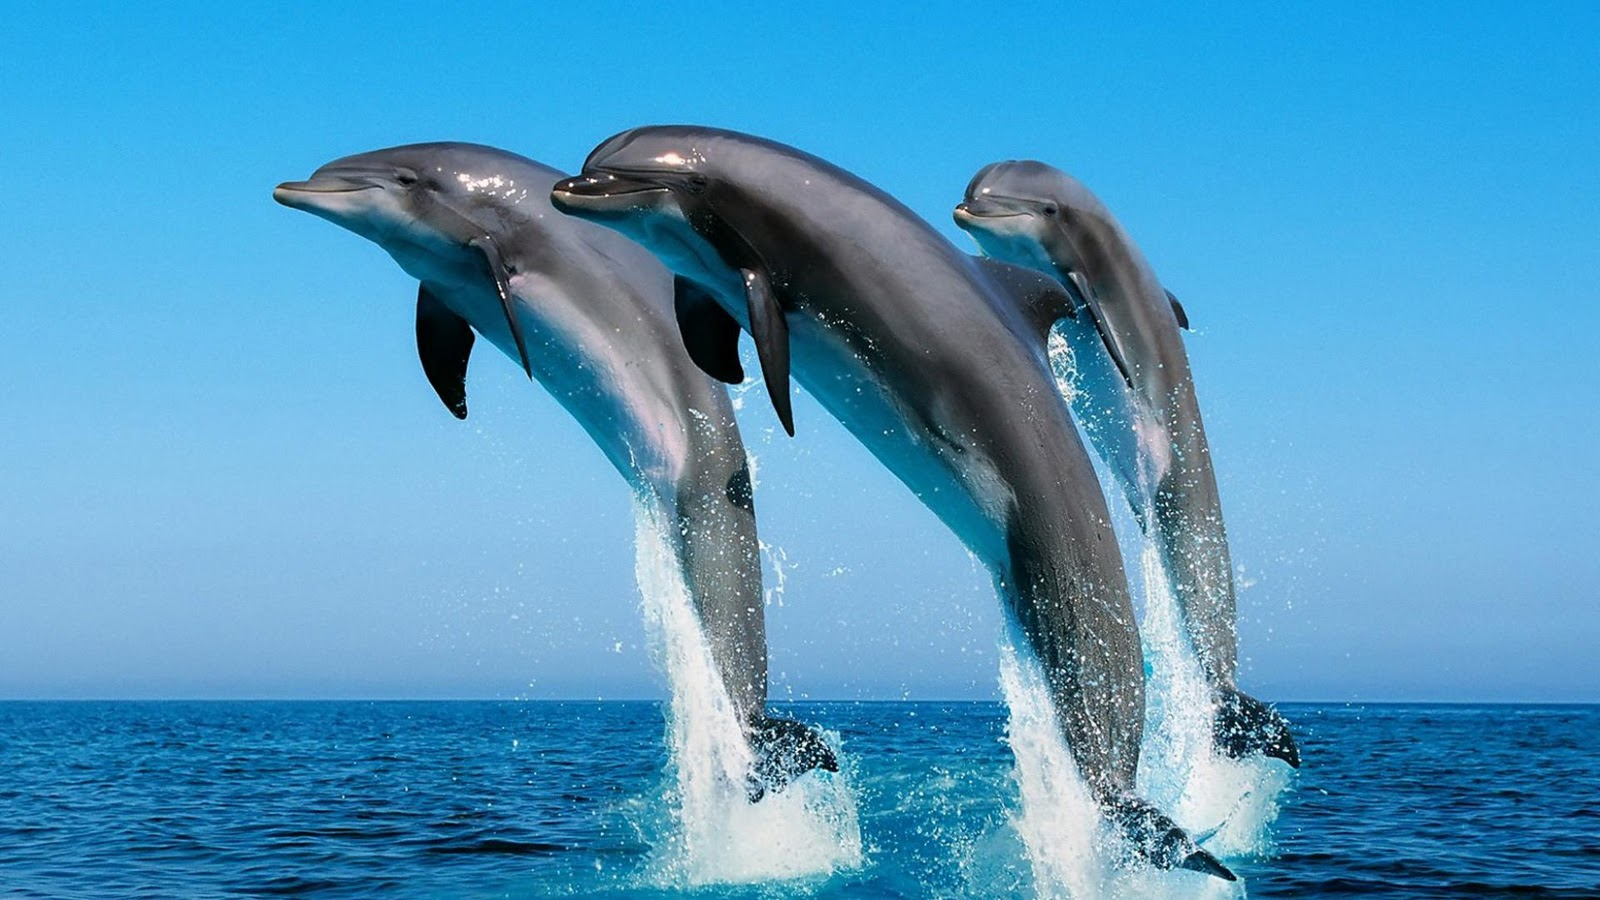 Dolphin Wallpapers | HD Wallpapers | Desktop Wallapers ...